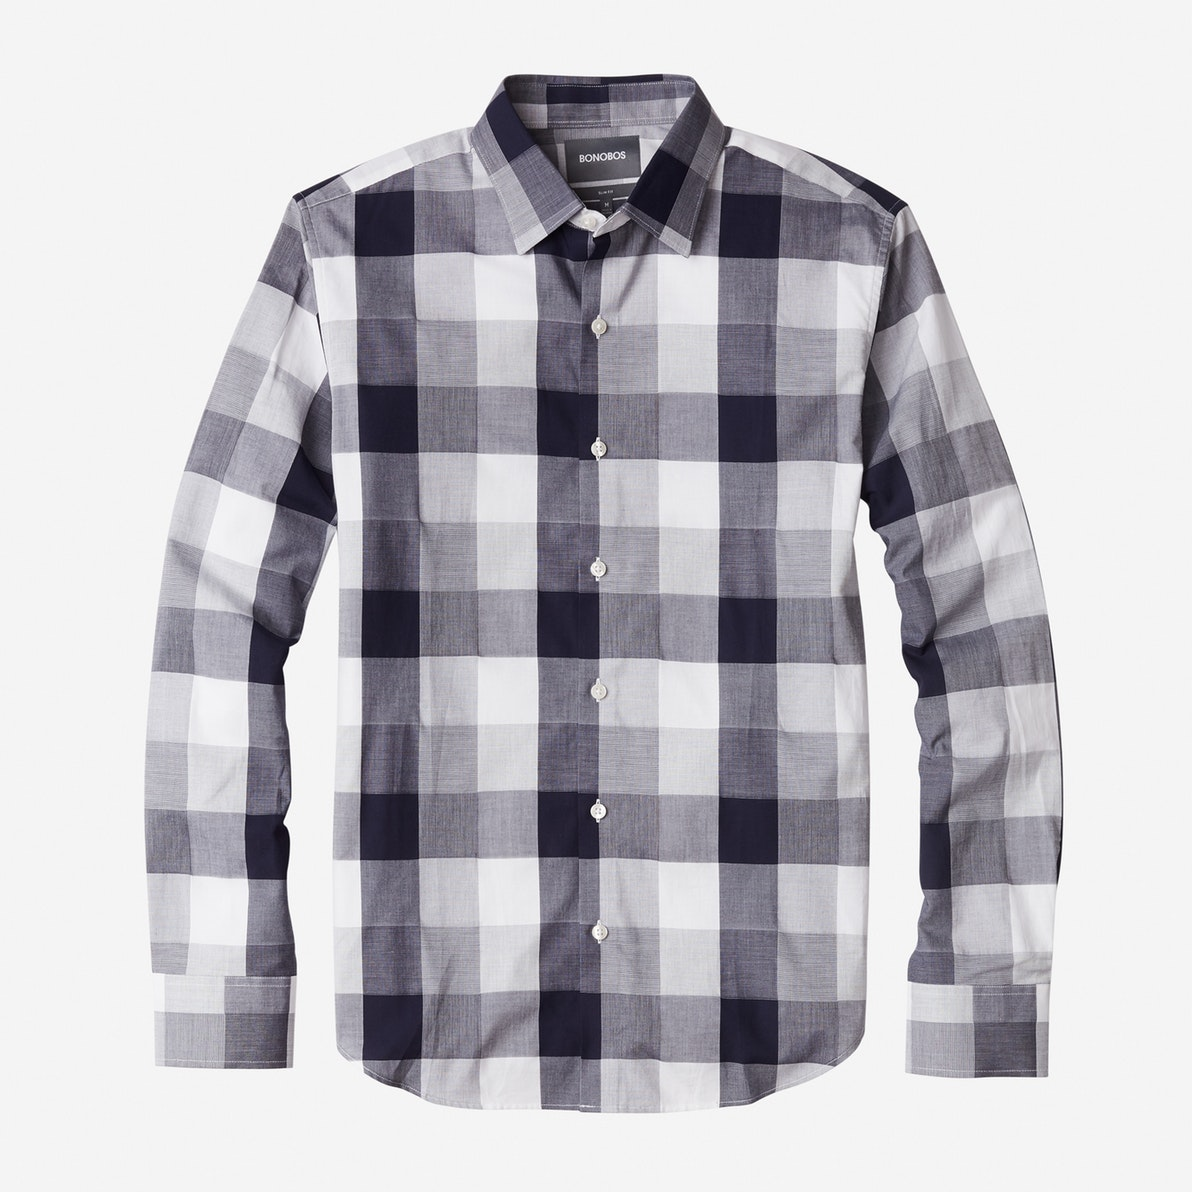 Casual_Shirts_Unbutton_Down_Shirts_20188_BLW89_category.jpg